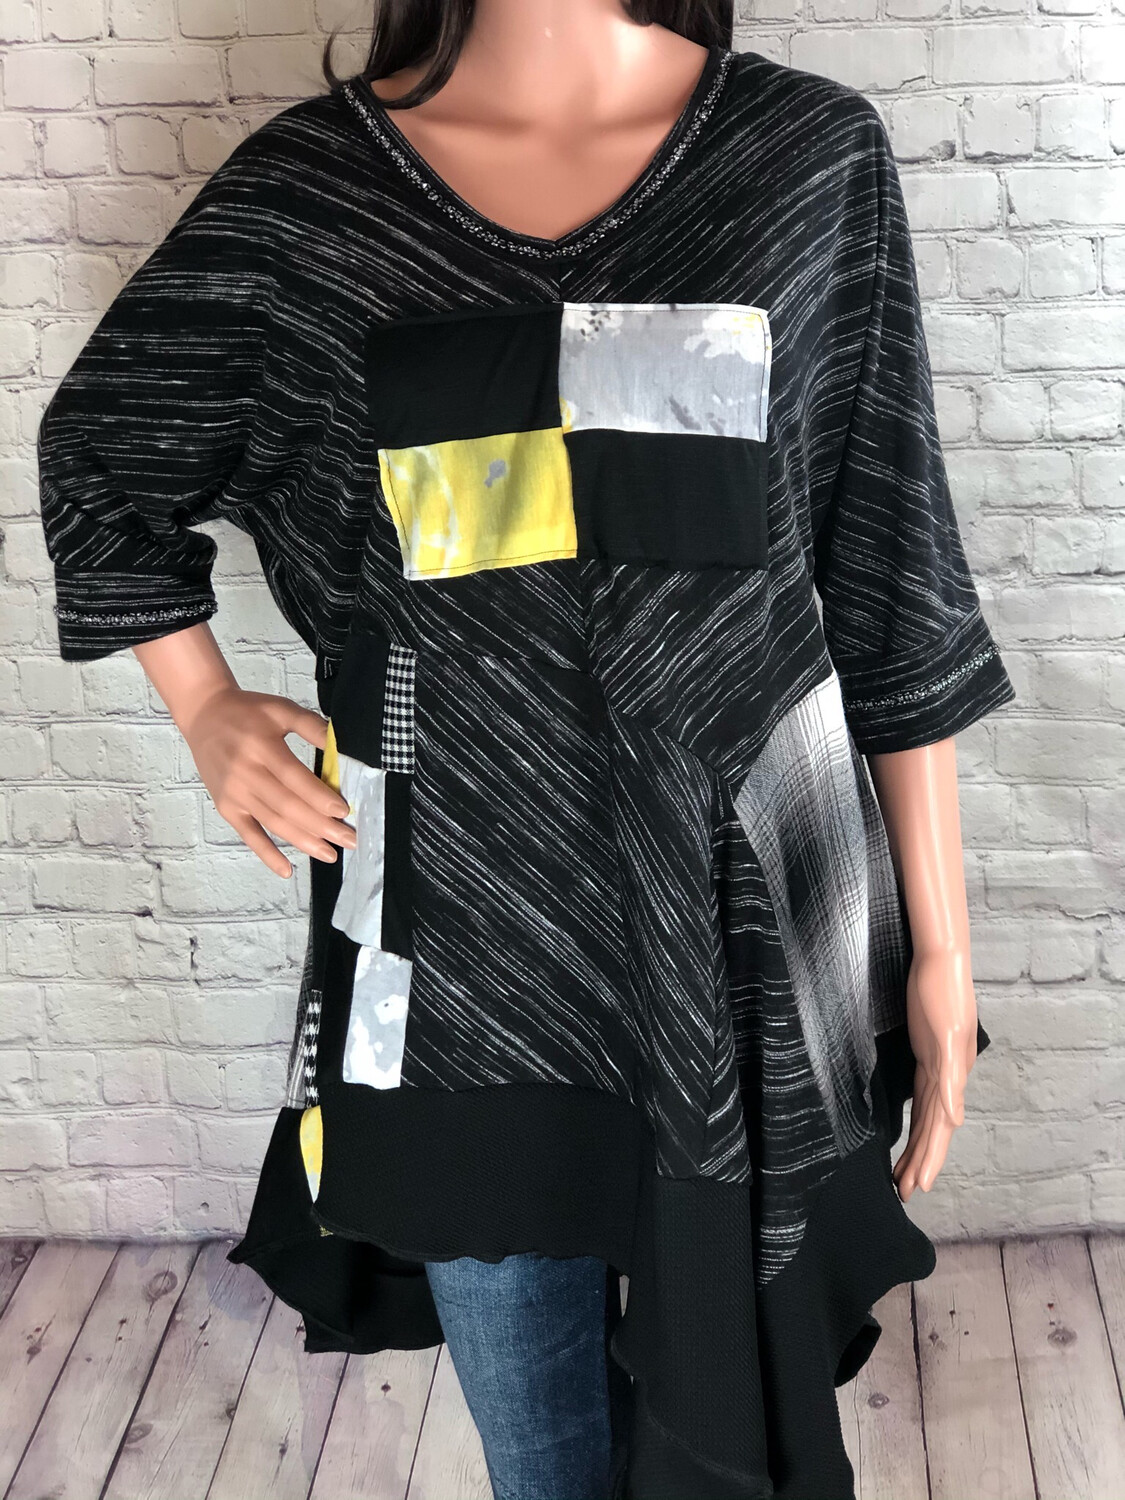 Eco Fashion S Threads Upcycled Tunic Comfy Lagenlook Patchwork Colorblock Wearable Art Top 2XL